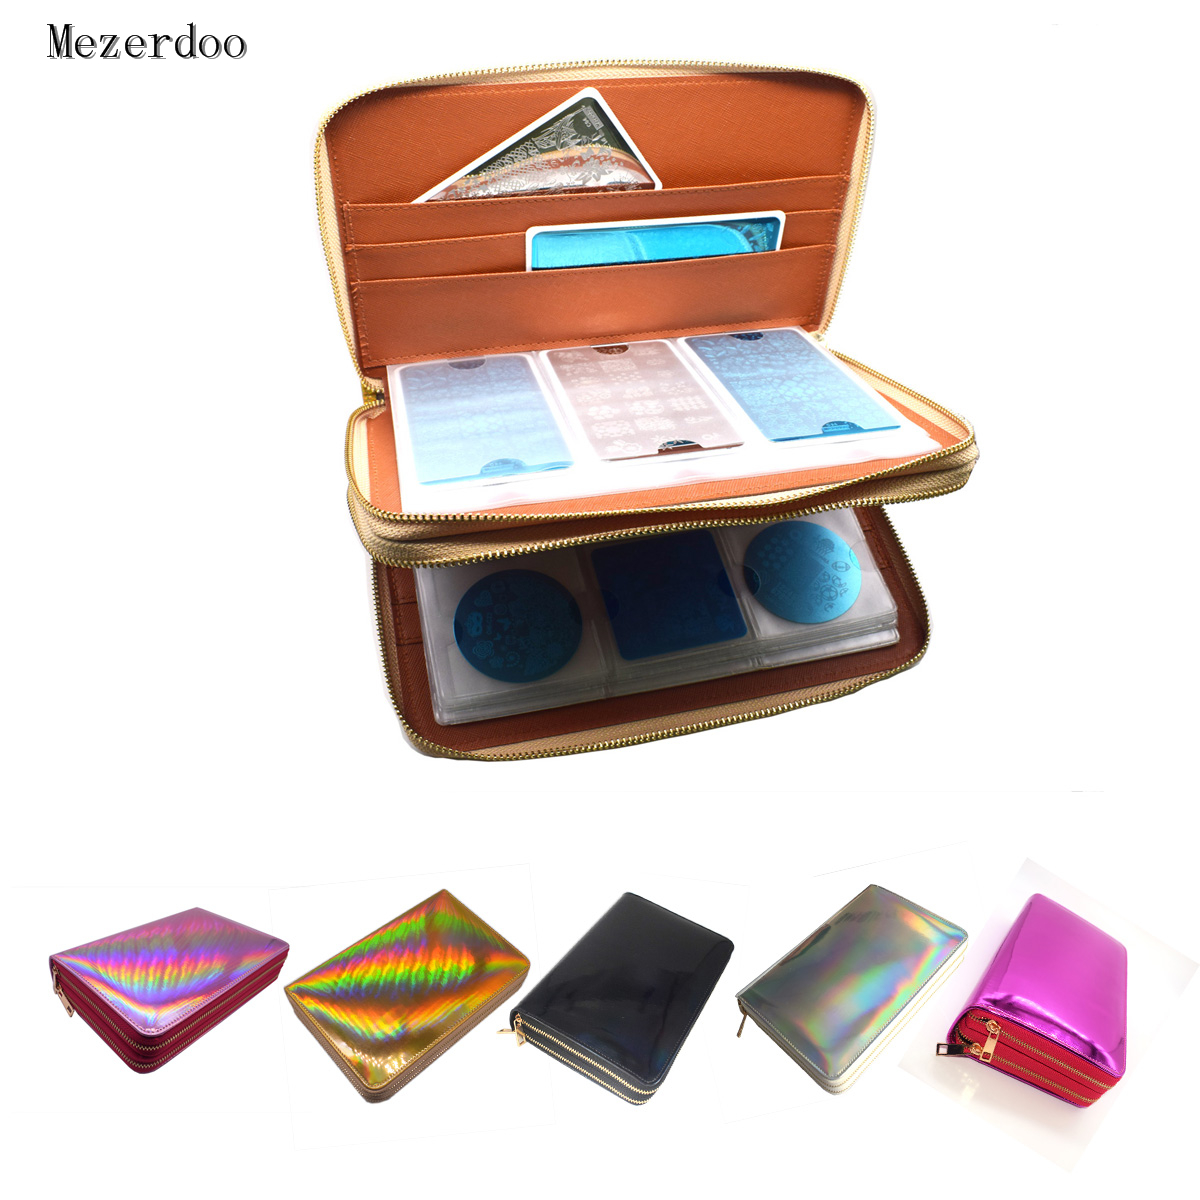 216Slots Nail Stamping Plate Holder Rainbow Laser Design Round Square Rectangular Manicure Nail Art Plate Organizer Empty Case216Slots Nail Stamping Plate Holder Rainbow Laser Design Round Square Rectangular Manicure Nail Art Plate Organizer Empty Case